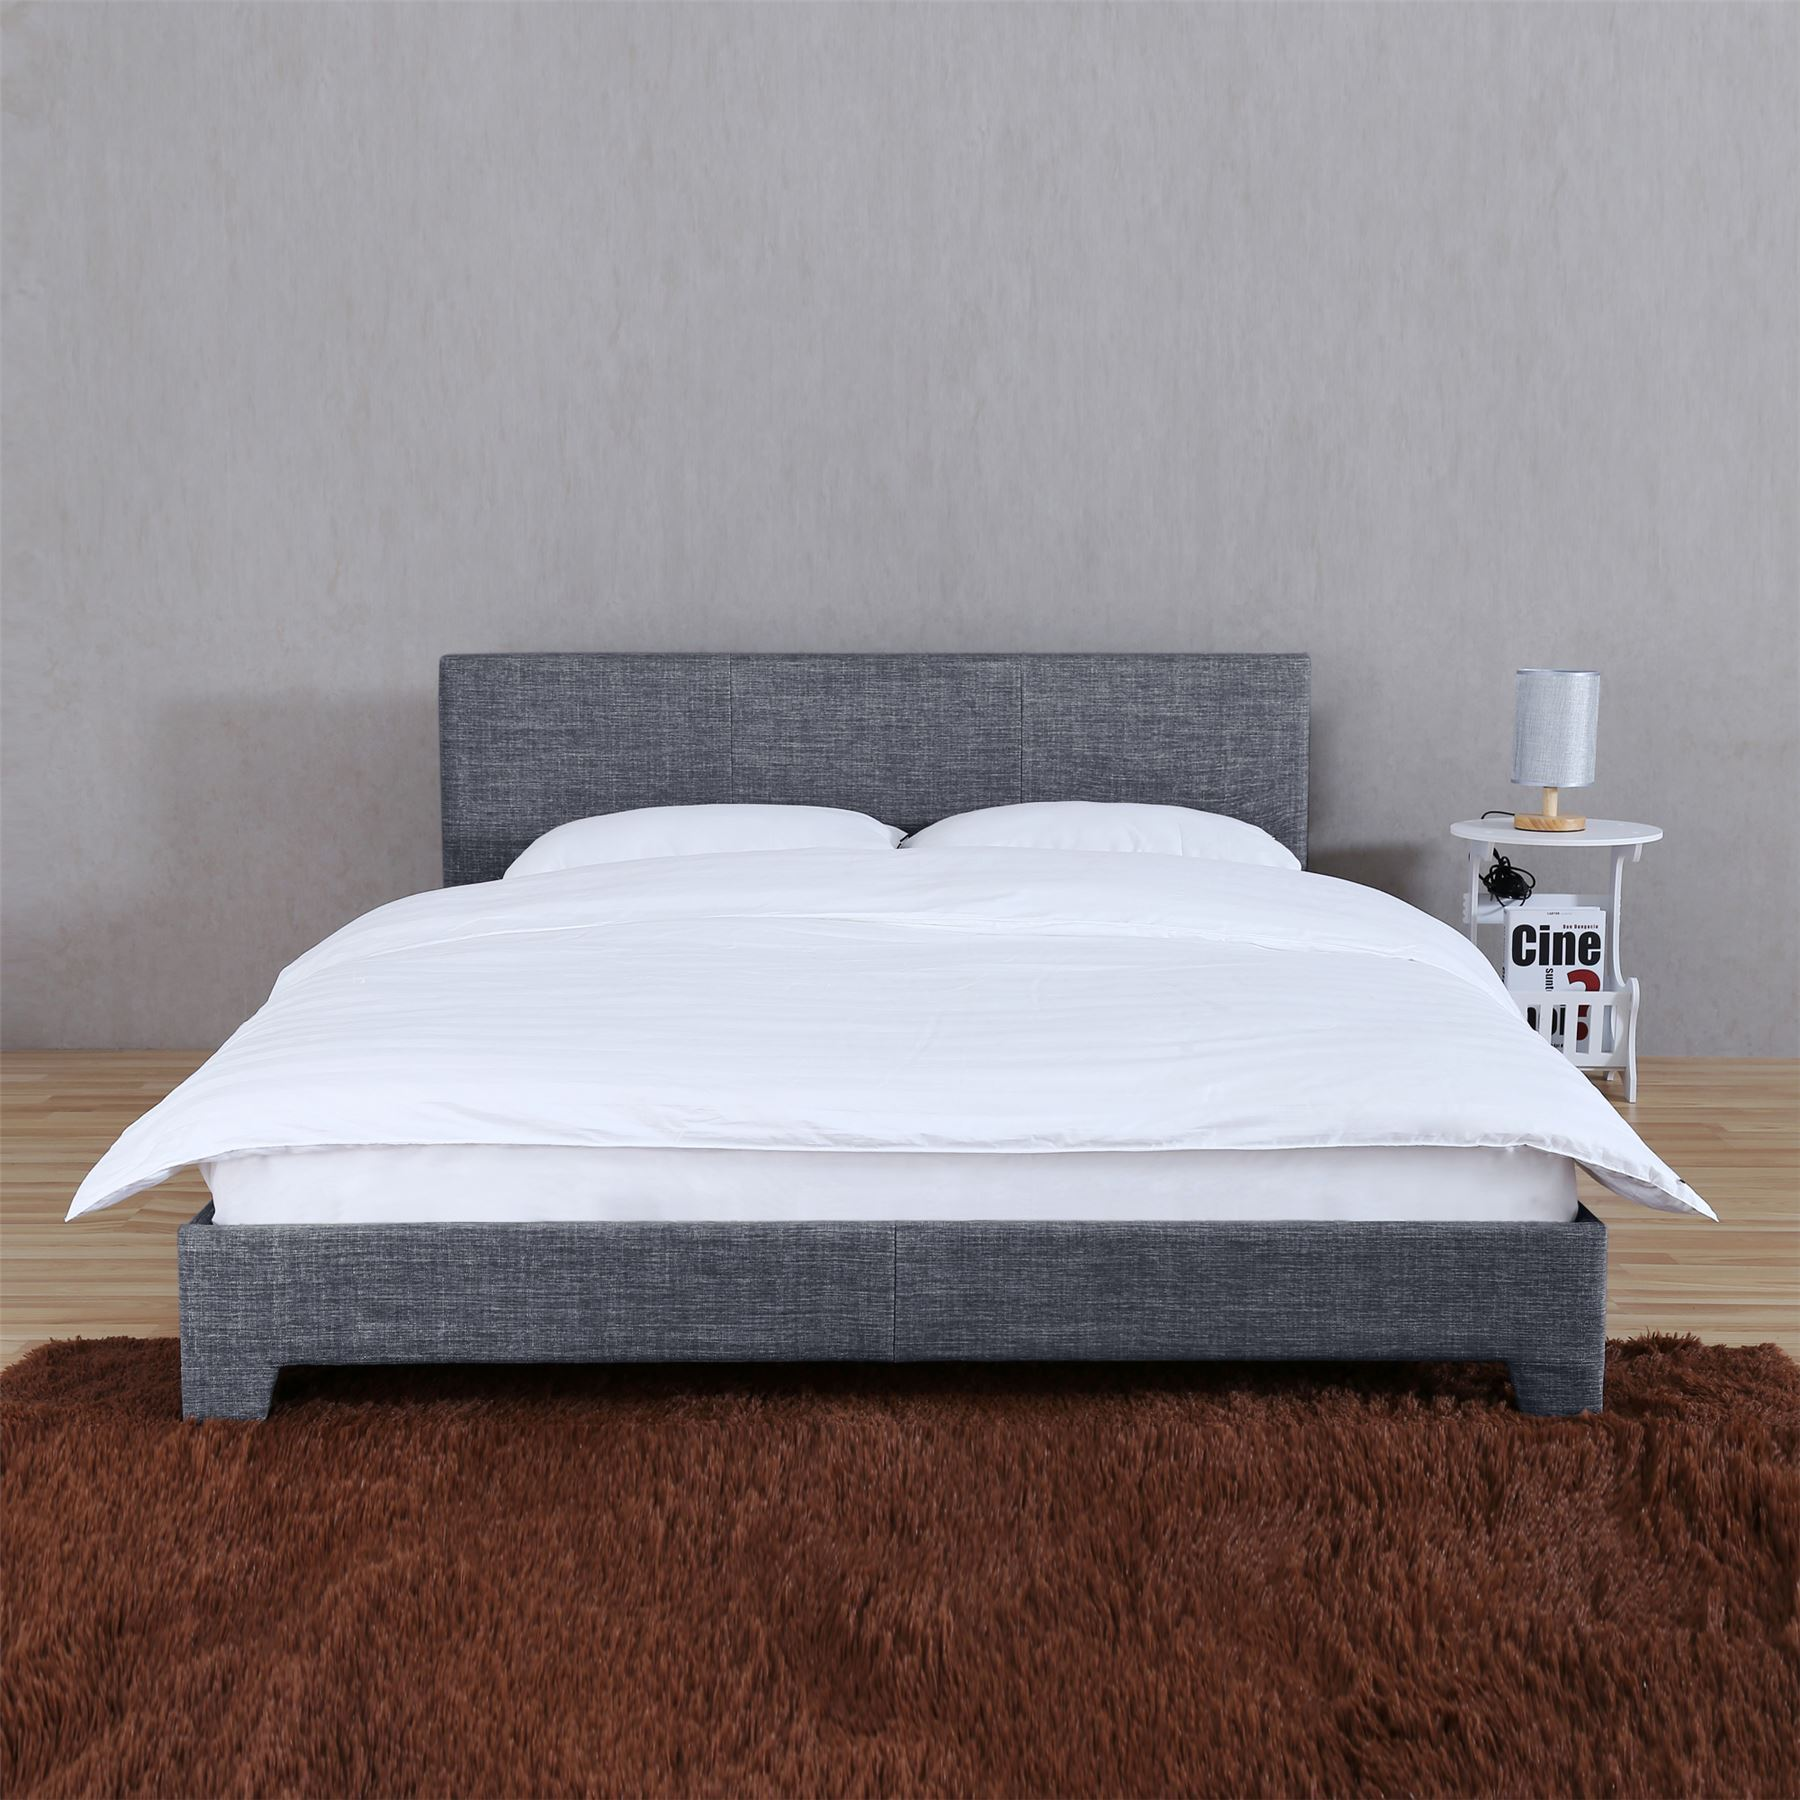 Victoria Double King Size Bed Frame 4ft6 5ft Upholstered